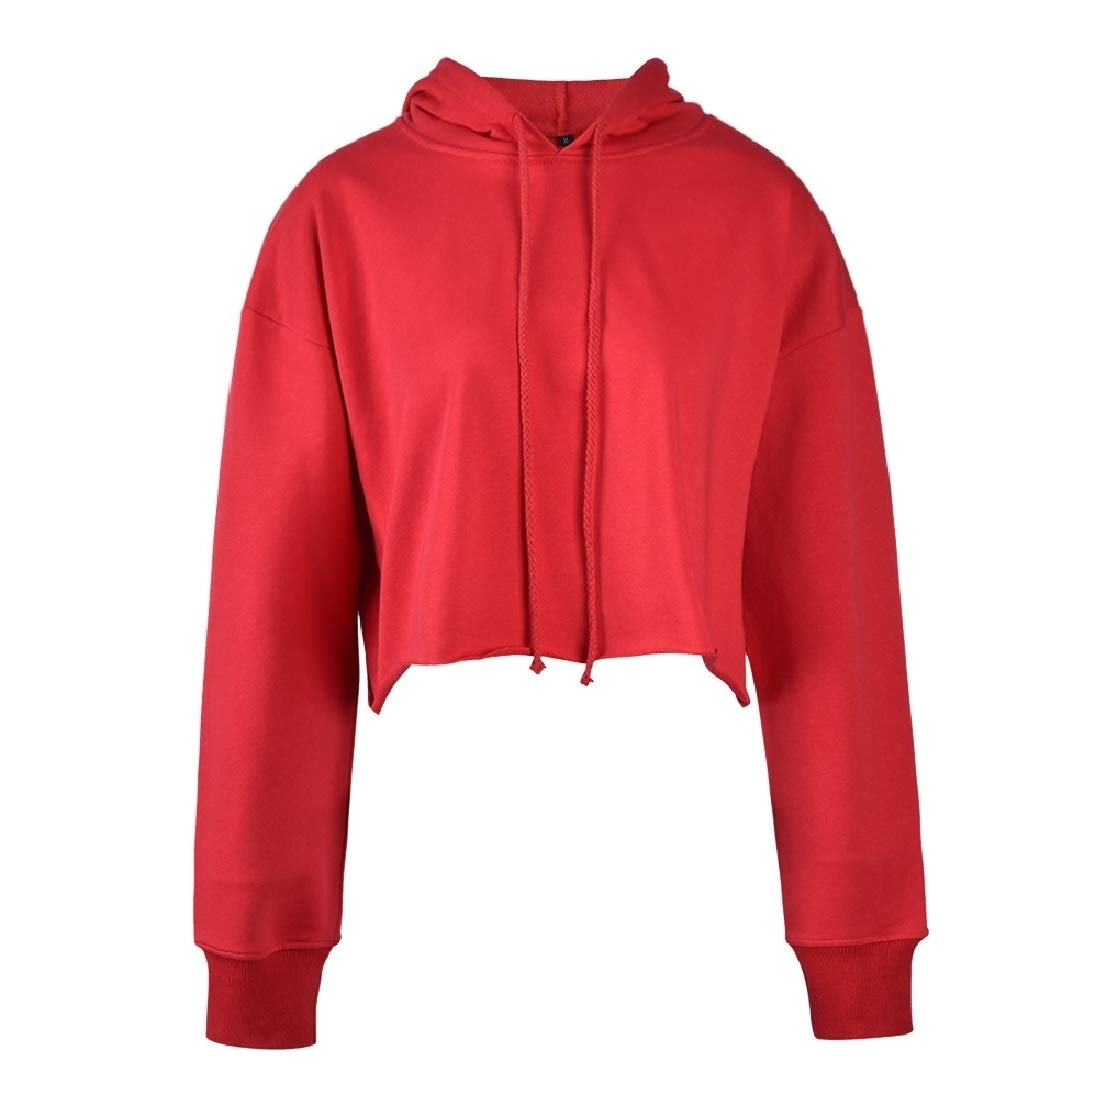 YUNY Womens Solid Mini Hooded Cropped Pullover Loose Sweatshirts Top Red S